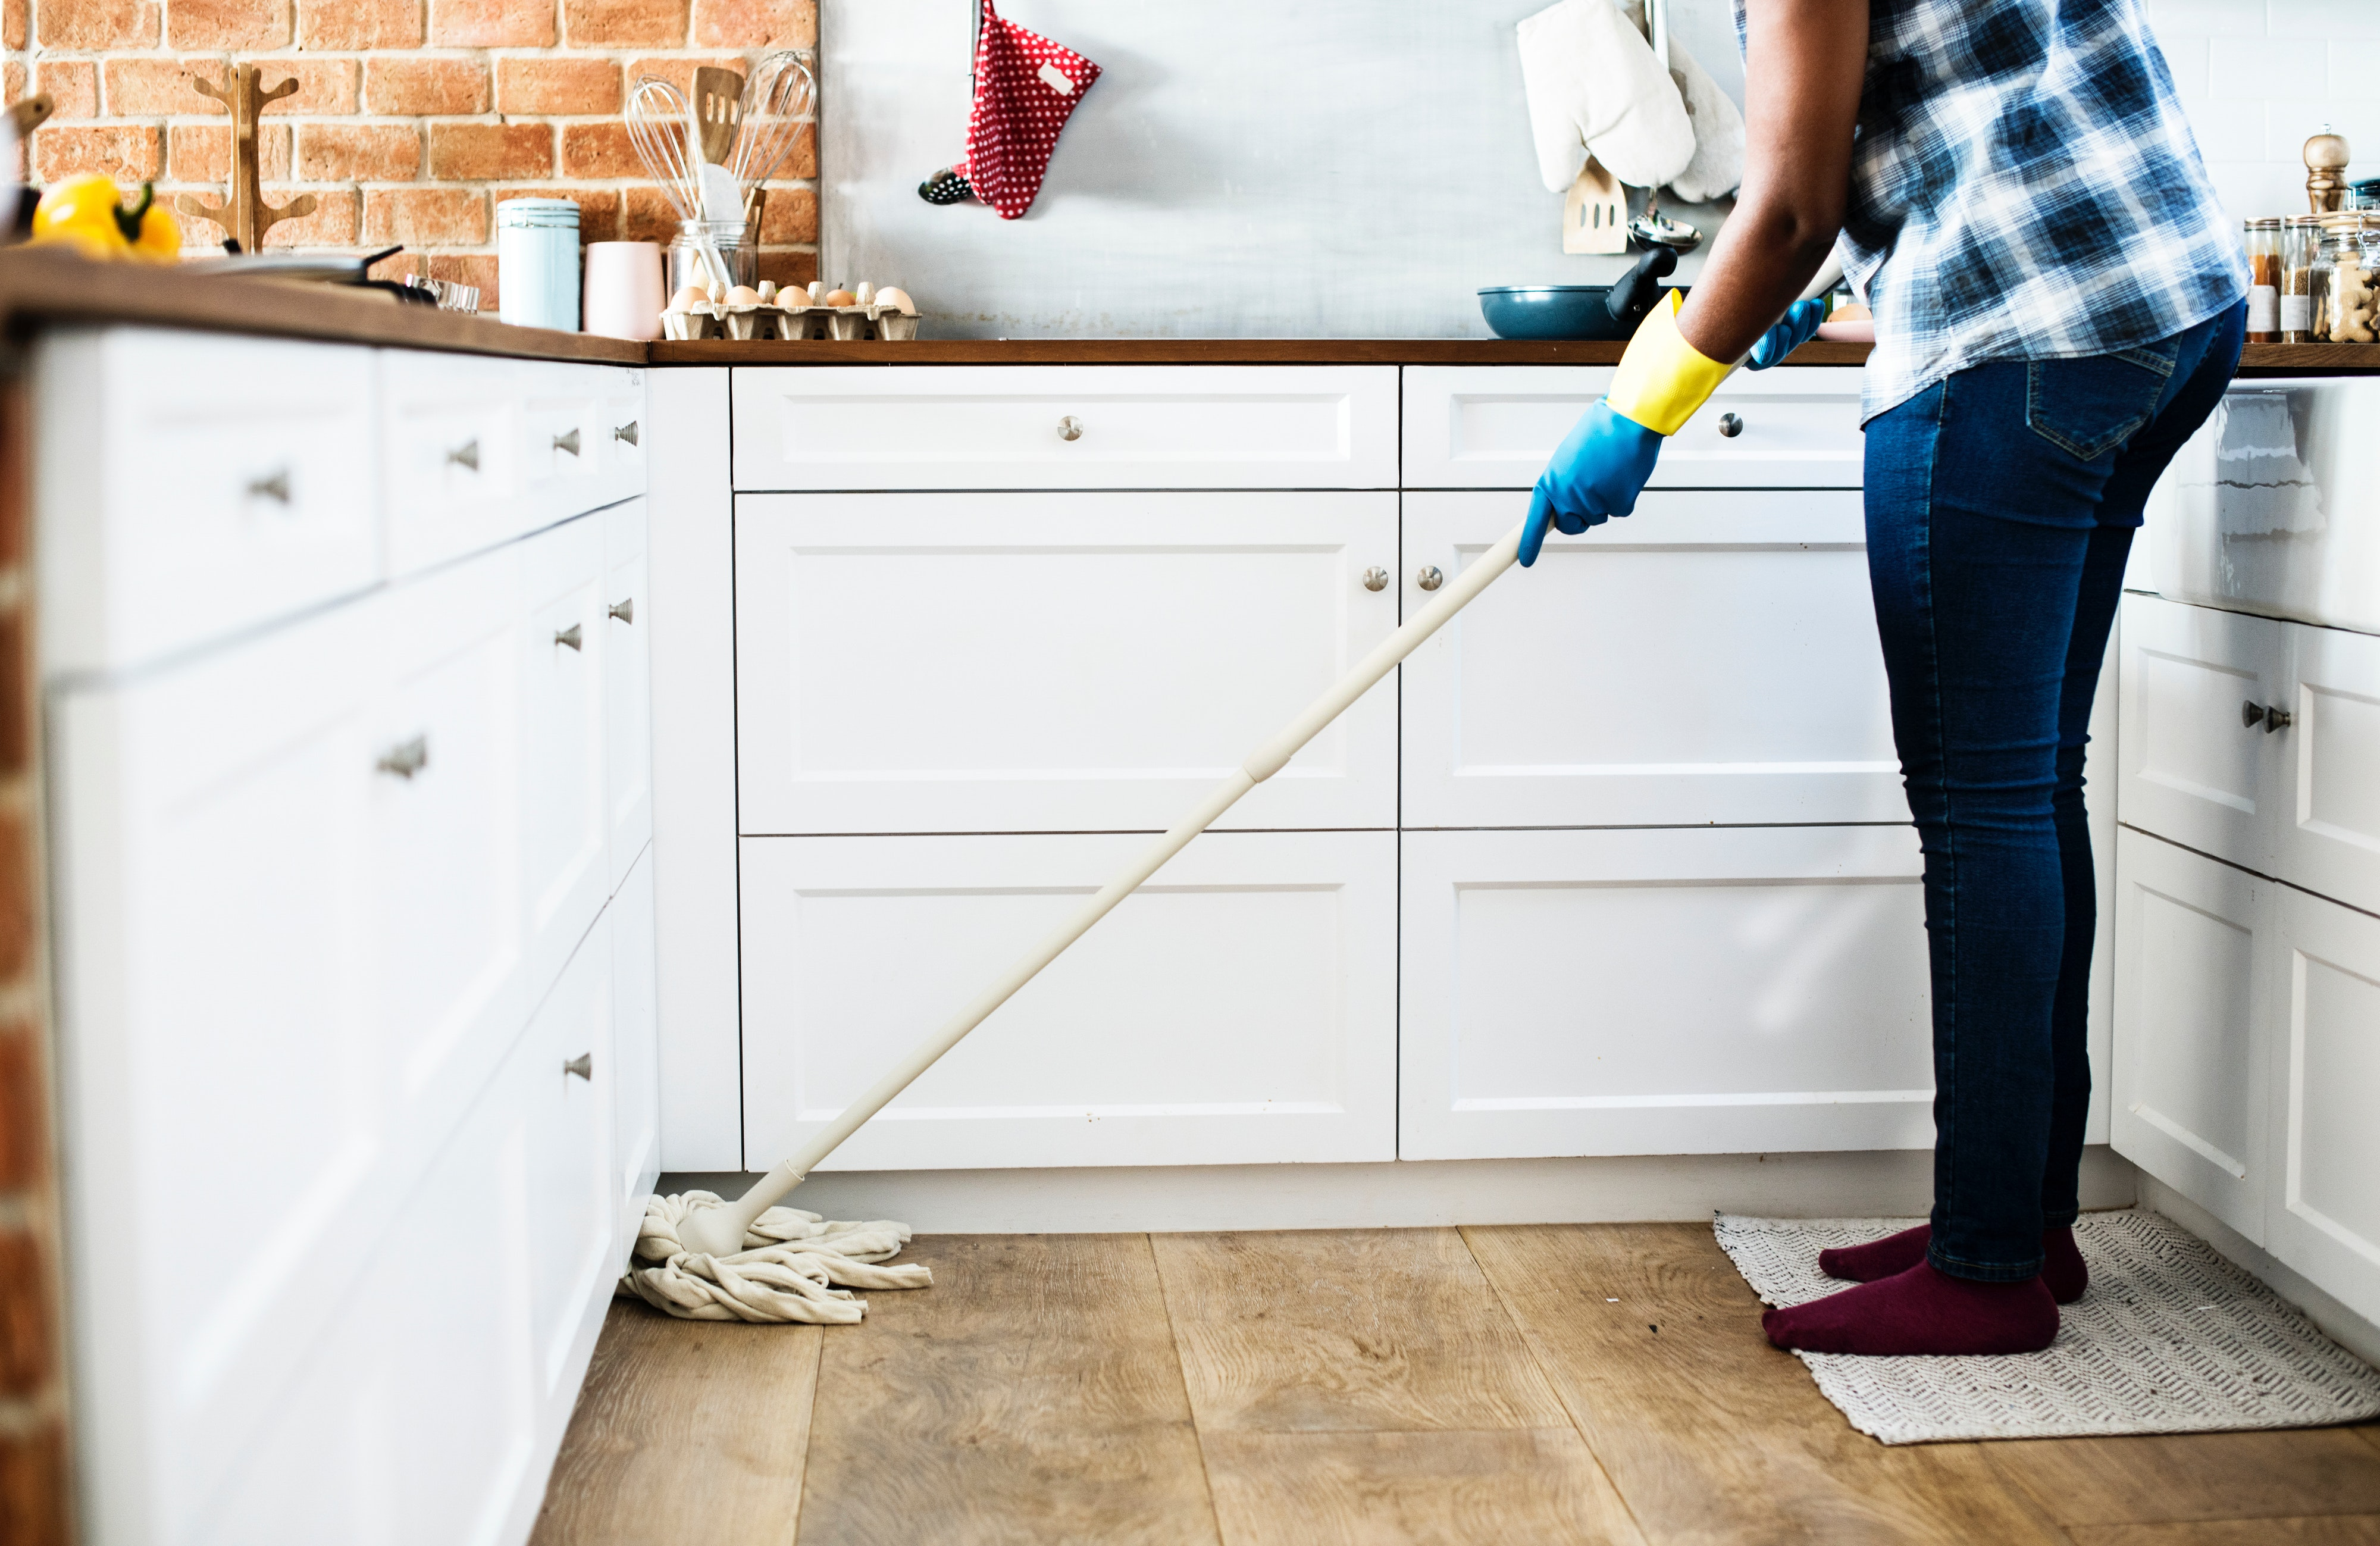 21 Cleaning Tips And Tricks For Moms + Free Checklist Printable